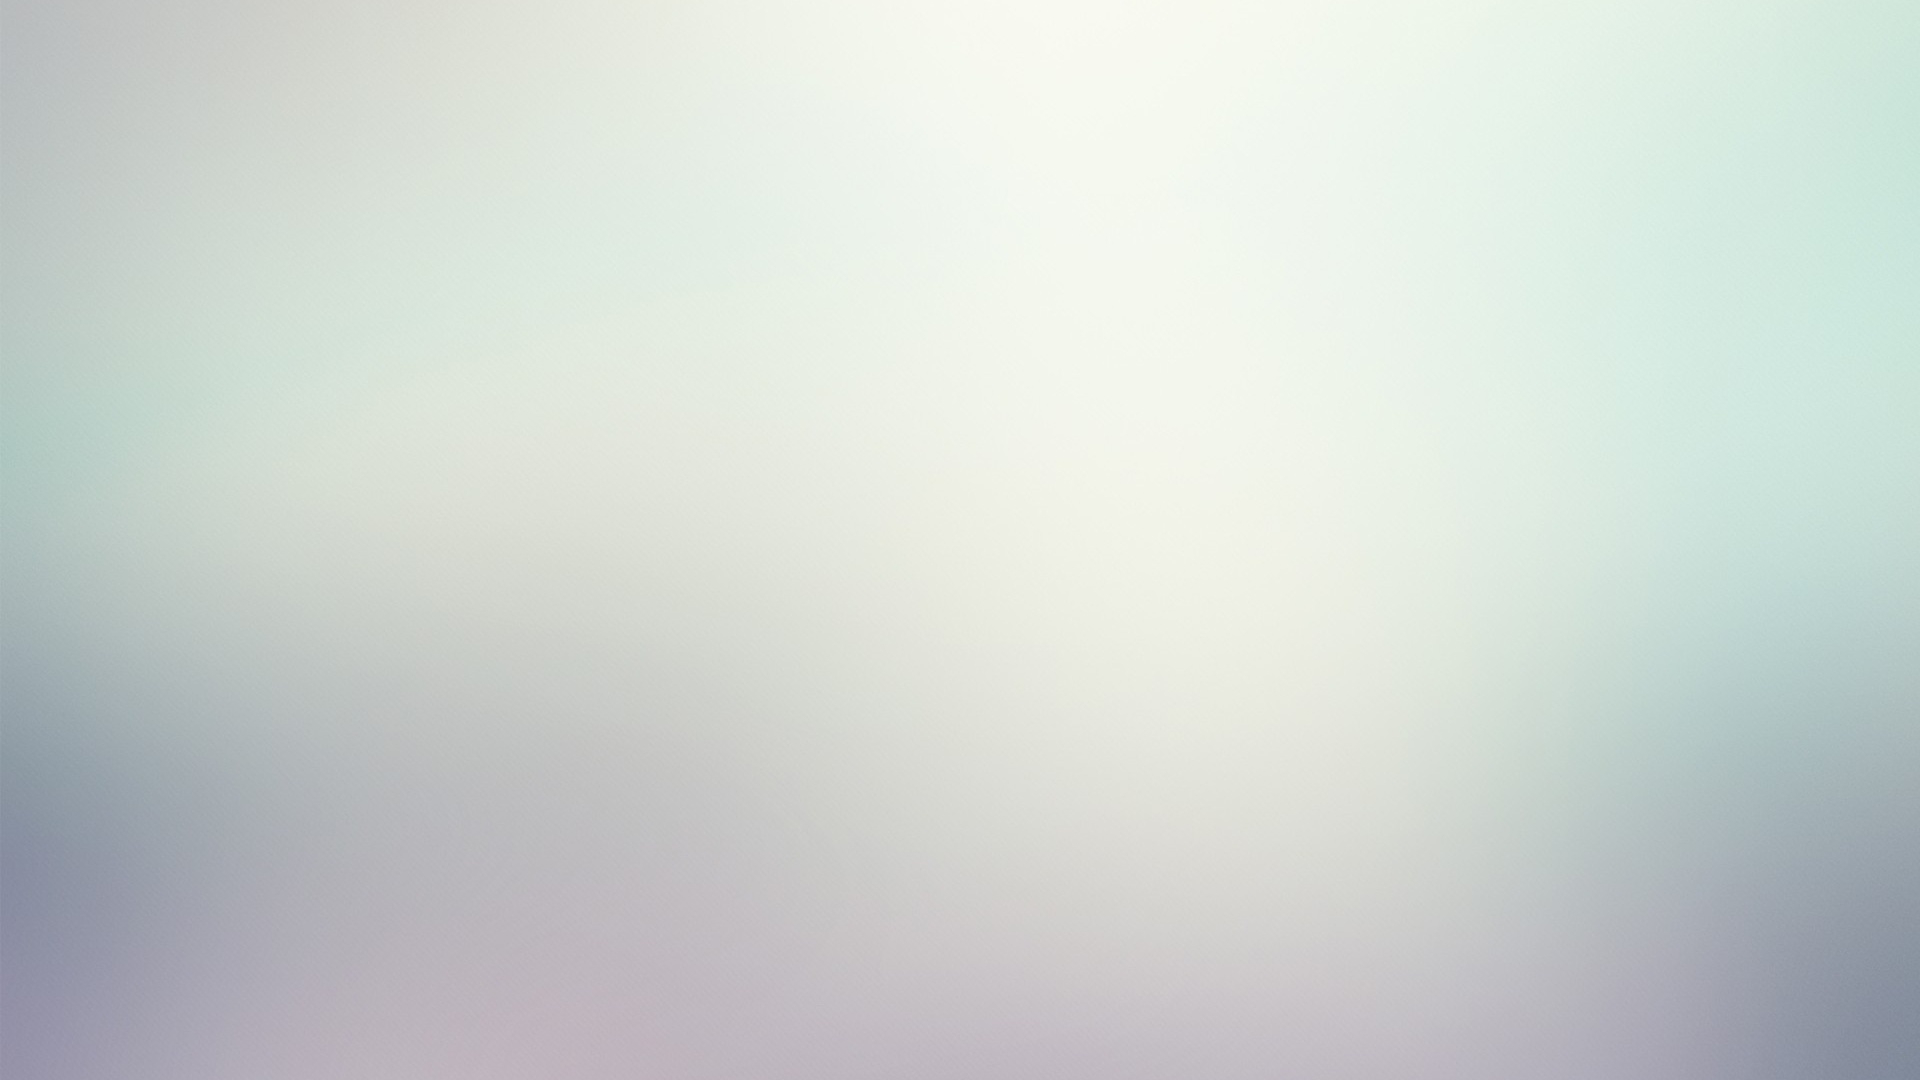 1920x1080 Minimal Gray To White Gradient Desktop PC And